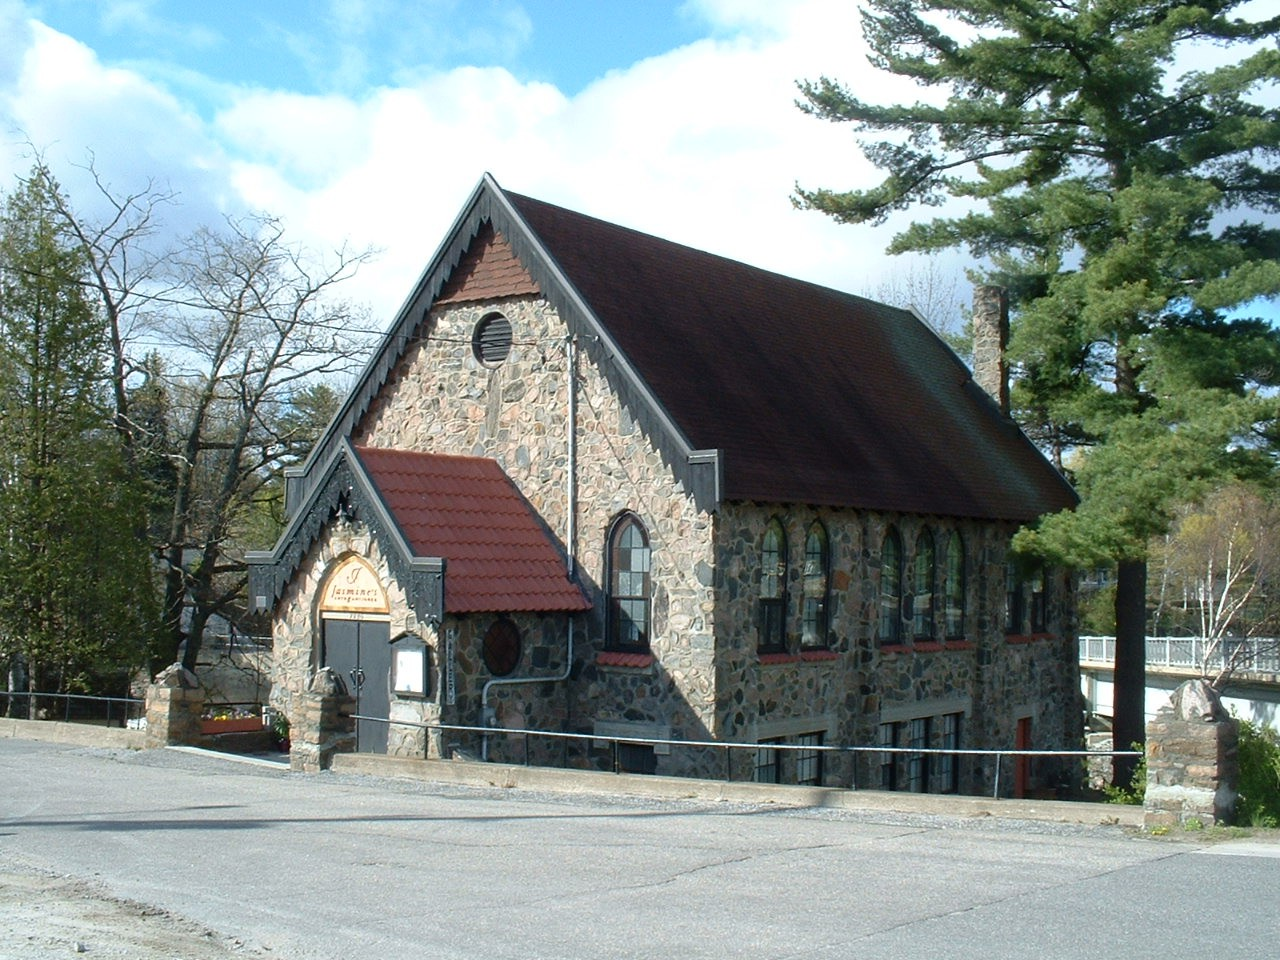 view of church building